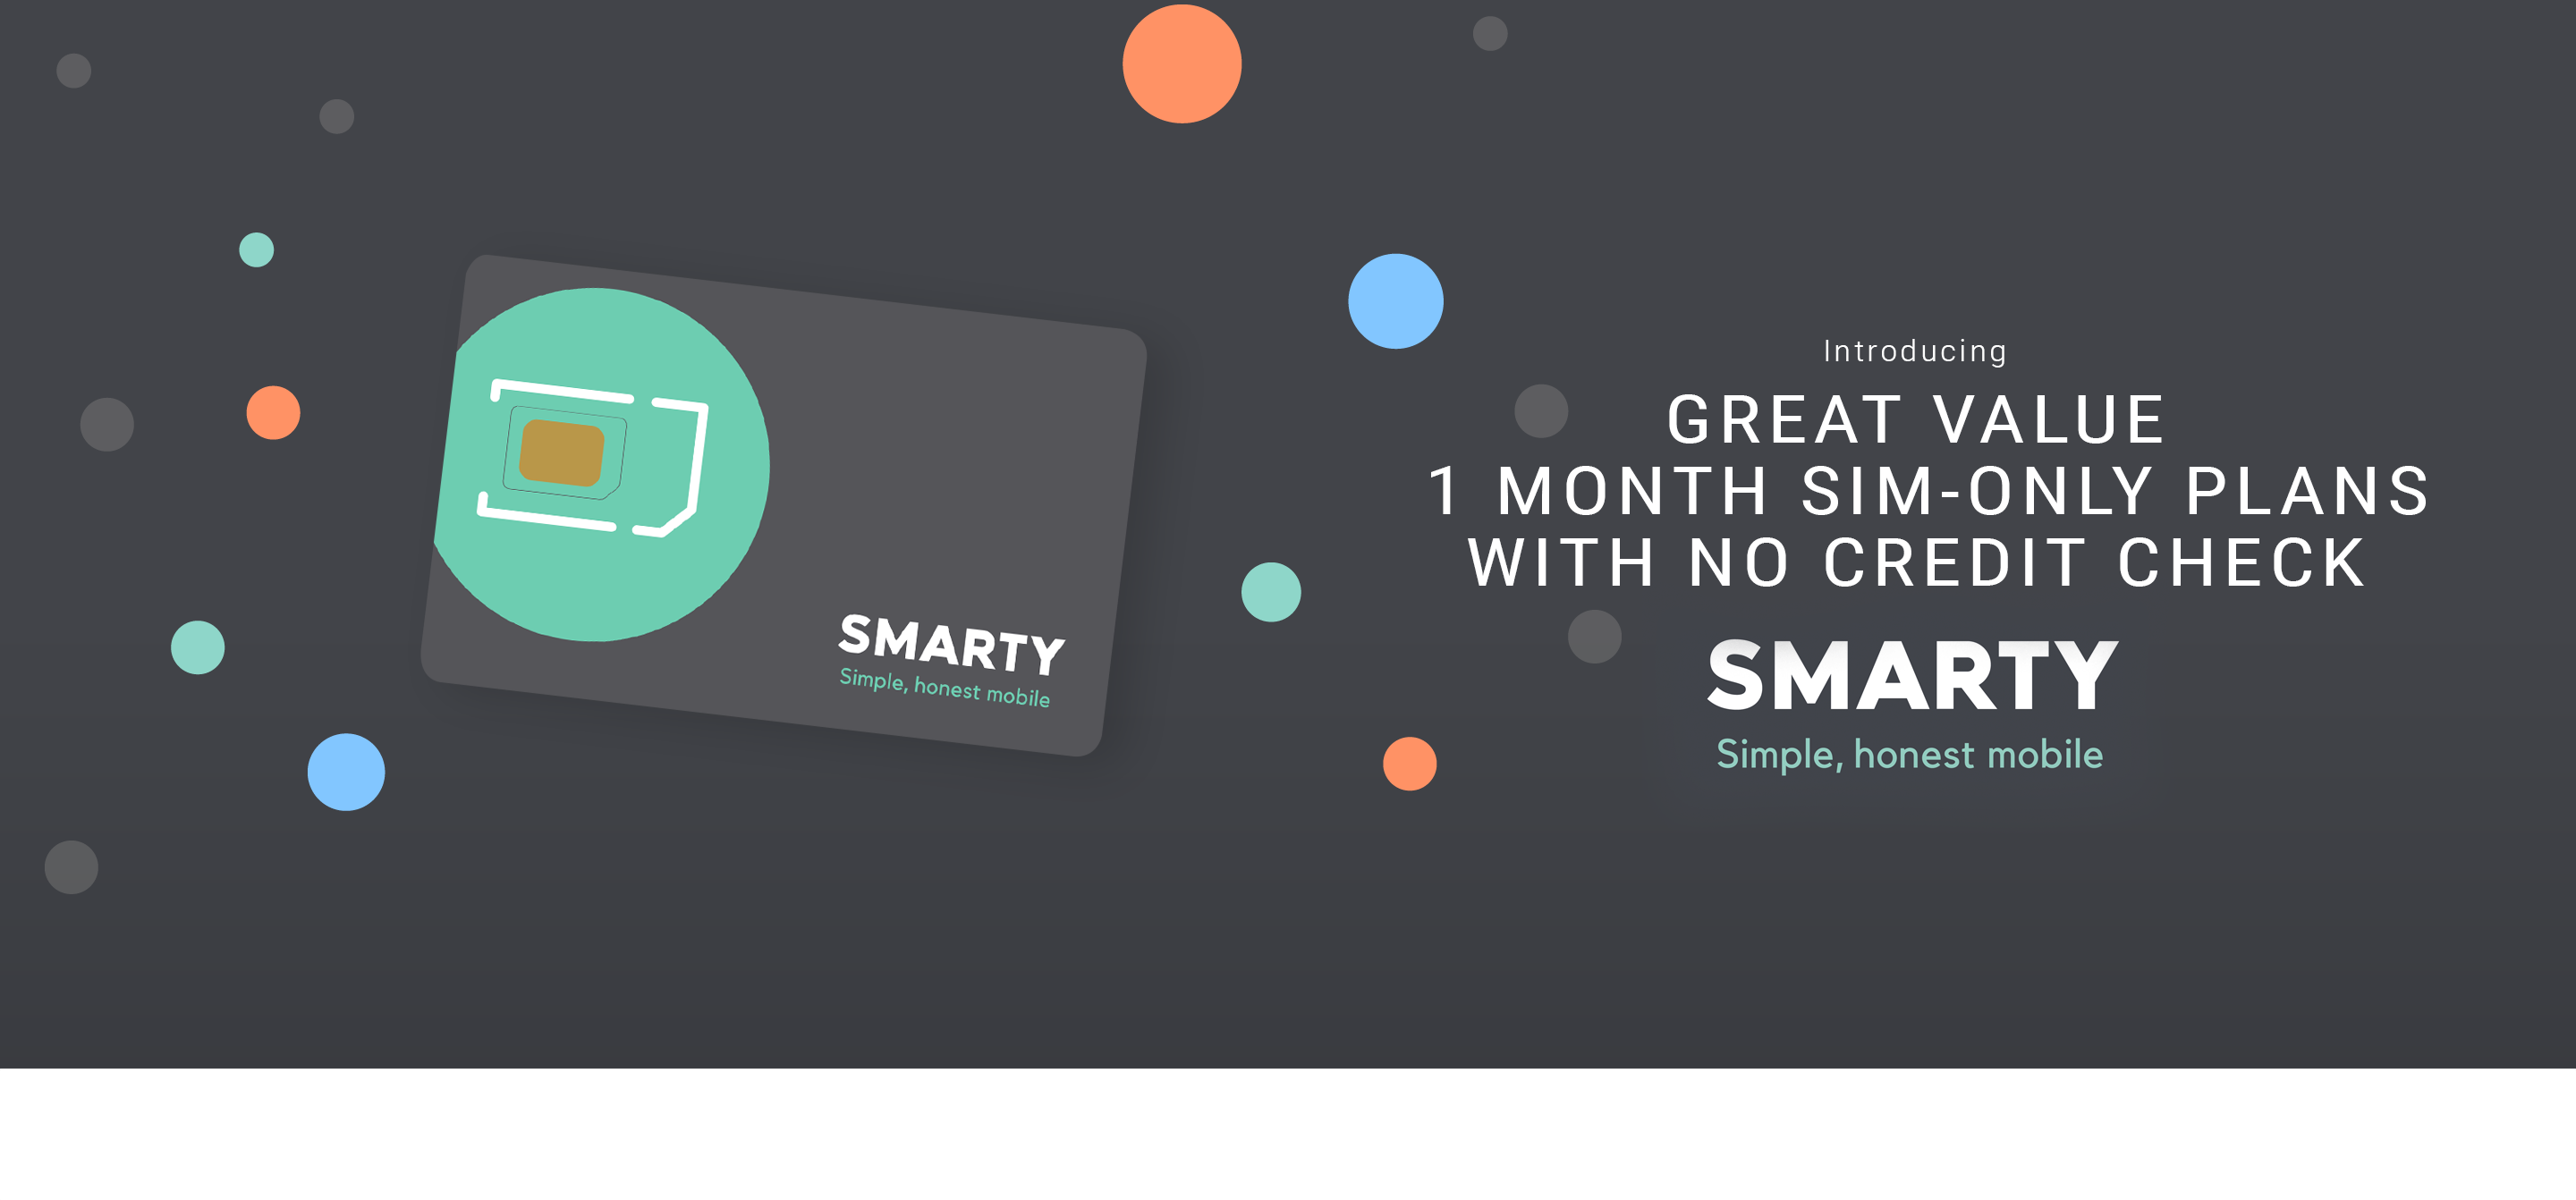 Smarty Sims Low Cost Straightforward Plans Efones Com